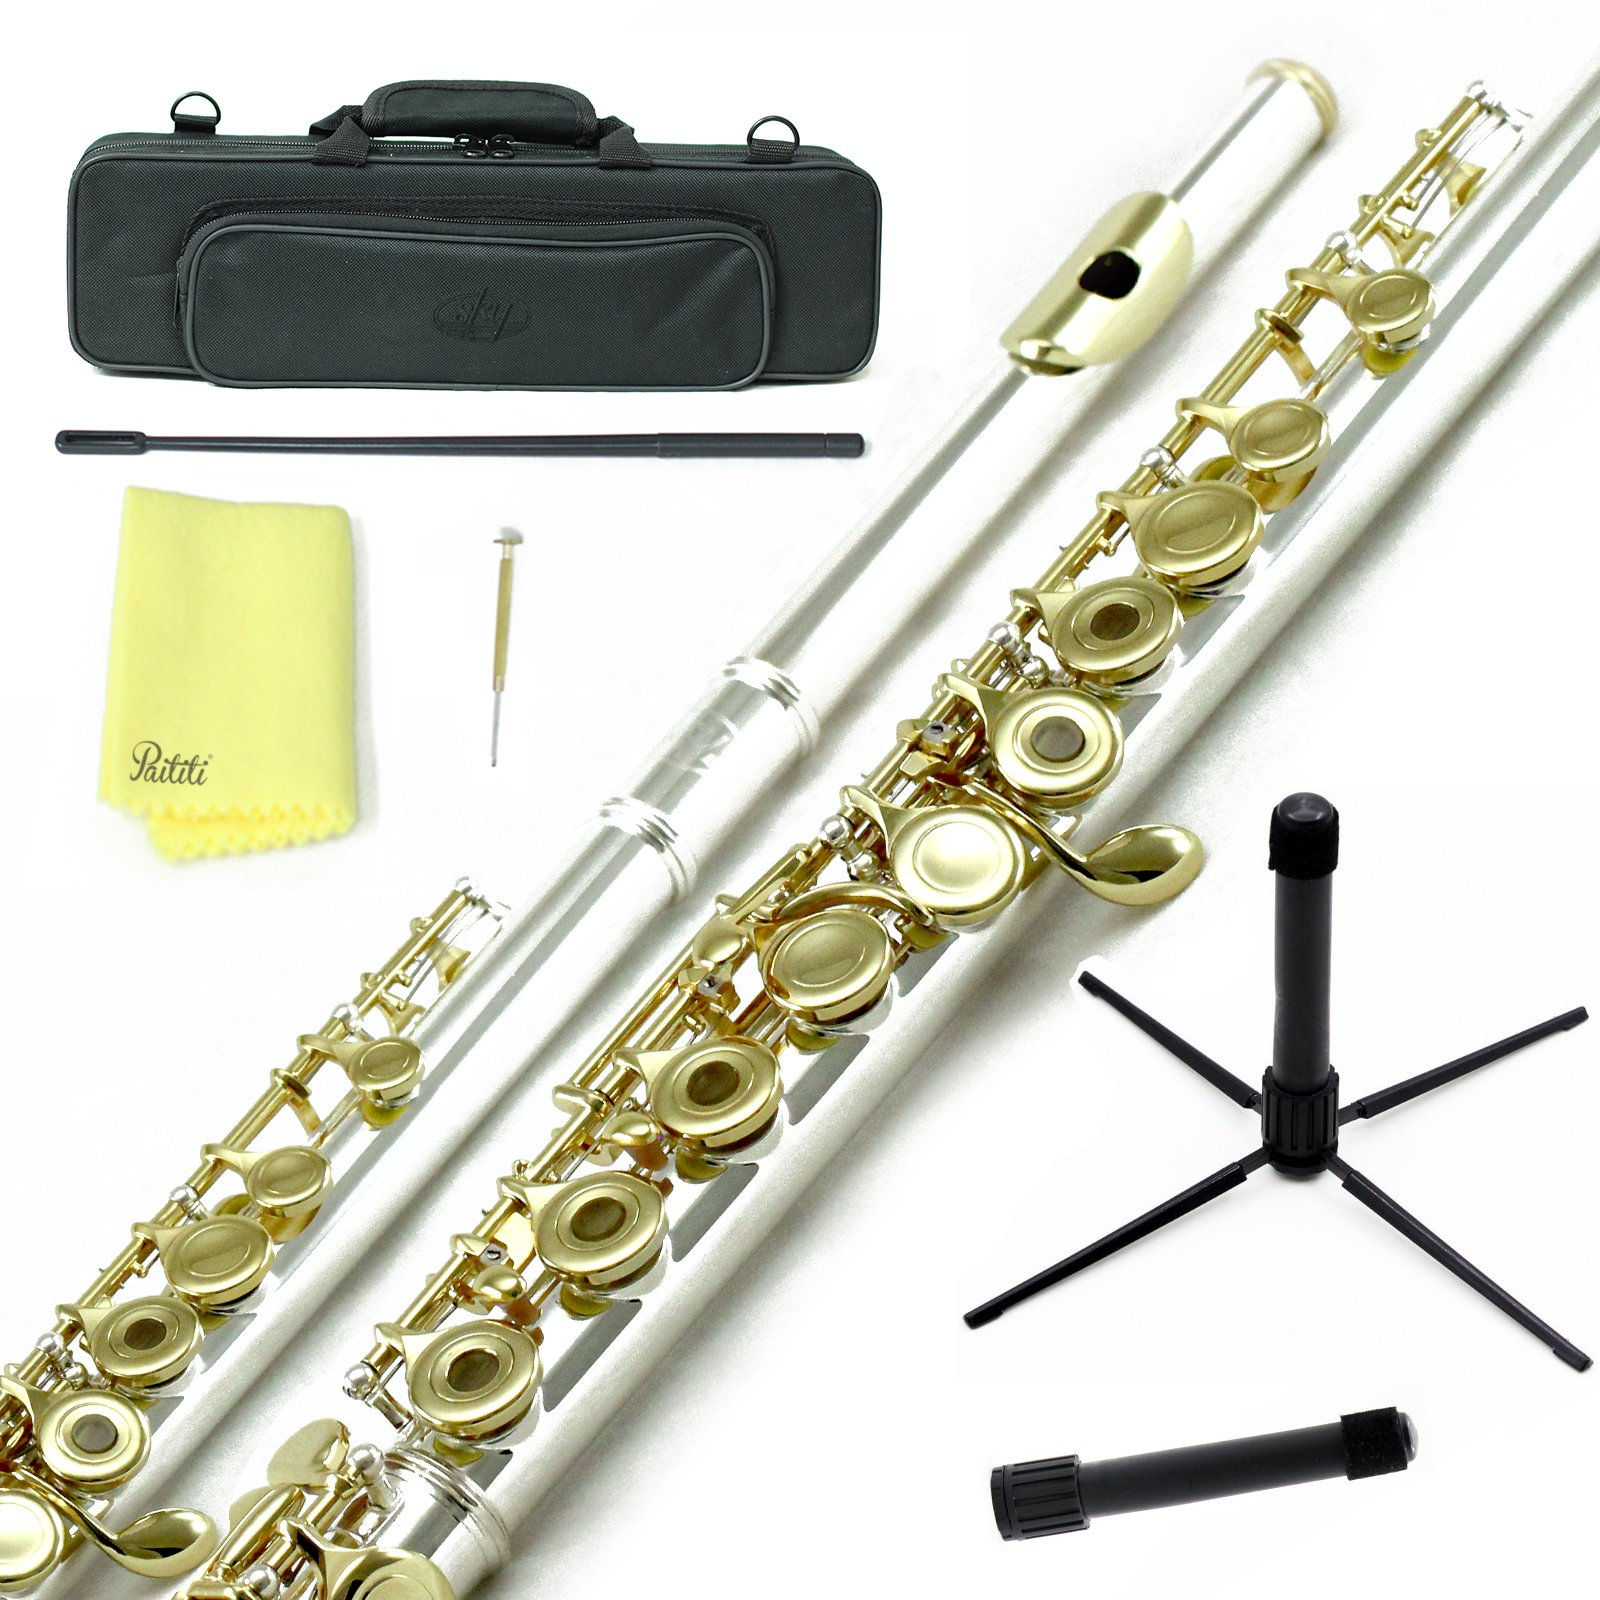 Sky C Flute with Lightweight Case, Cleaning Rod, Cloth, Joint Grease and Screw Driver - Silver/Gold Open Hole